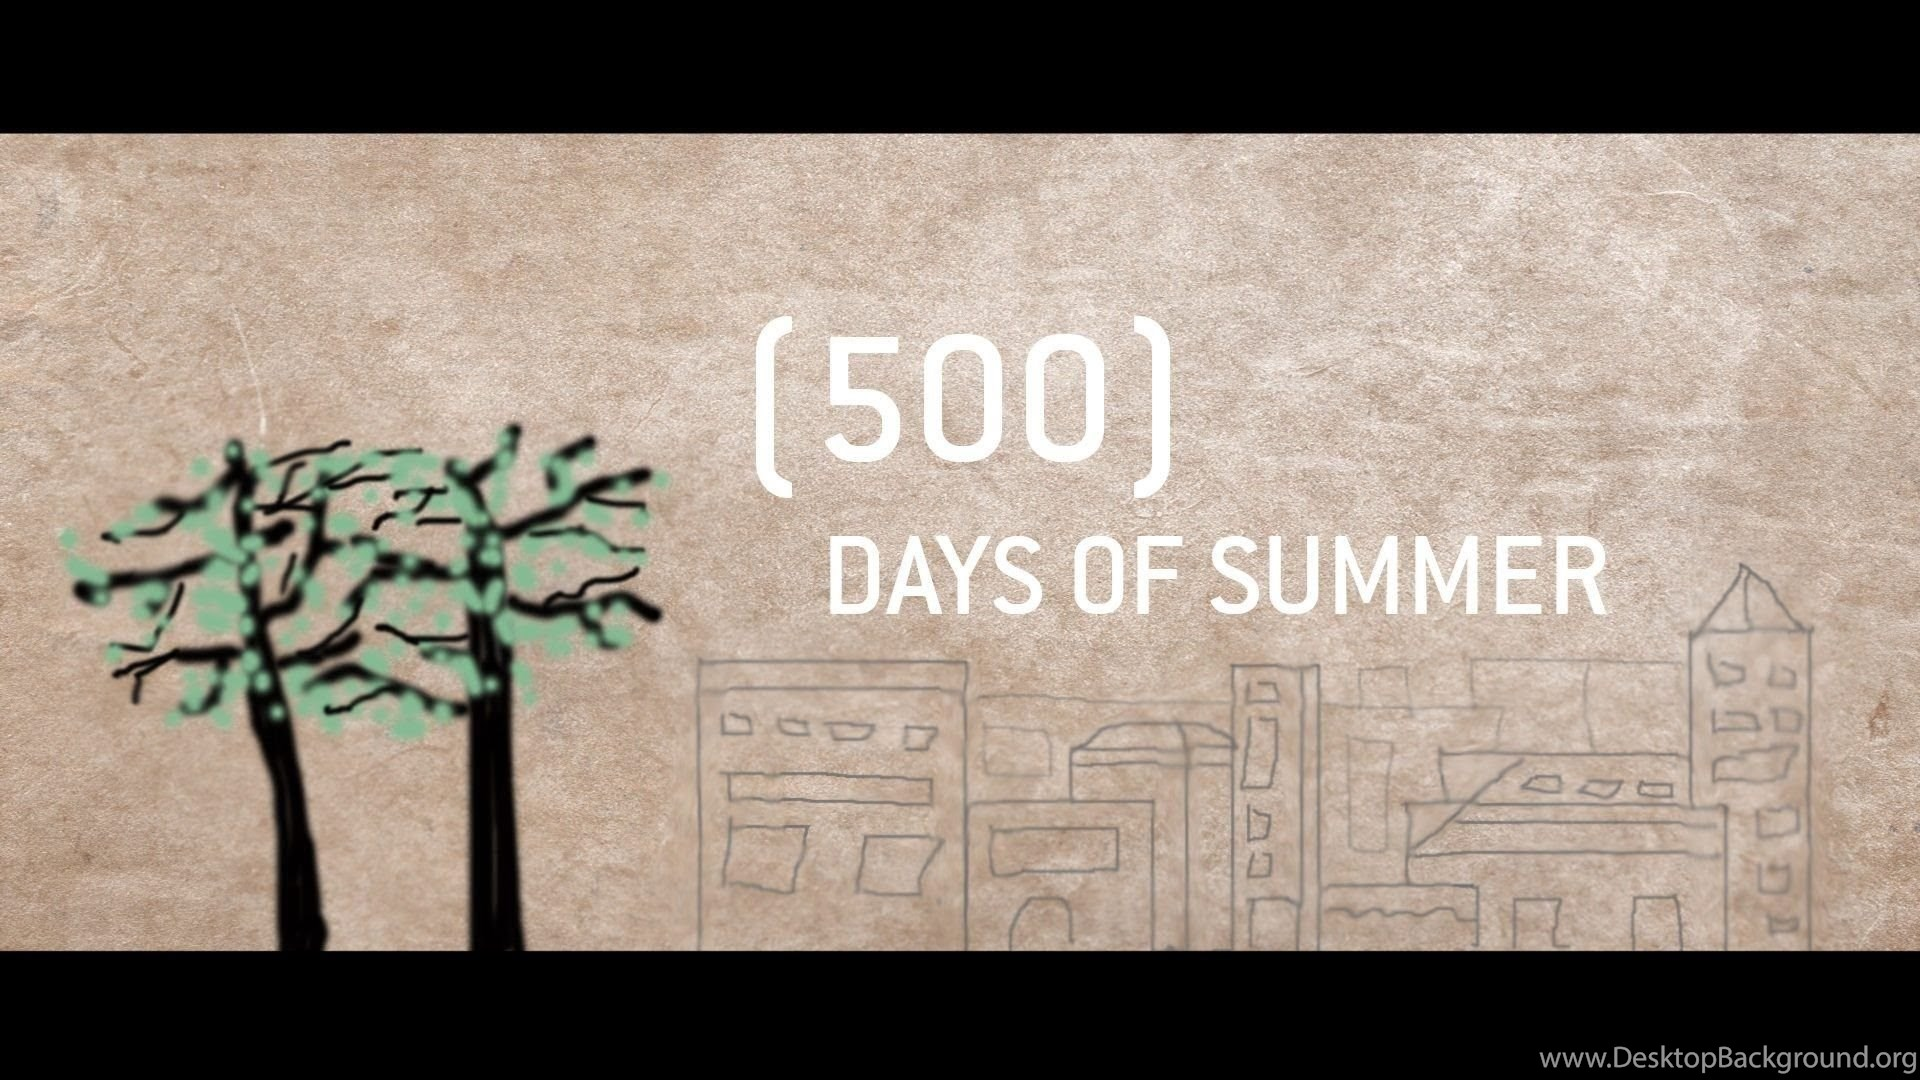 500) days of summer in 60 seconds youtube desktop background